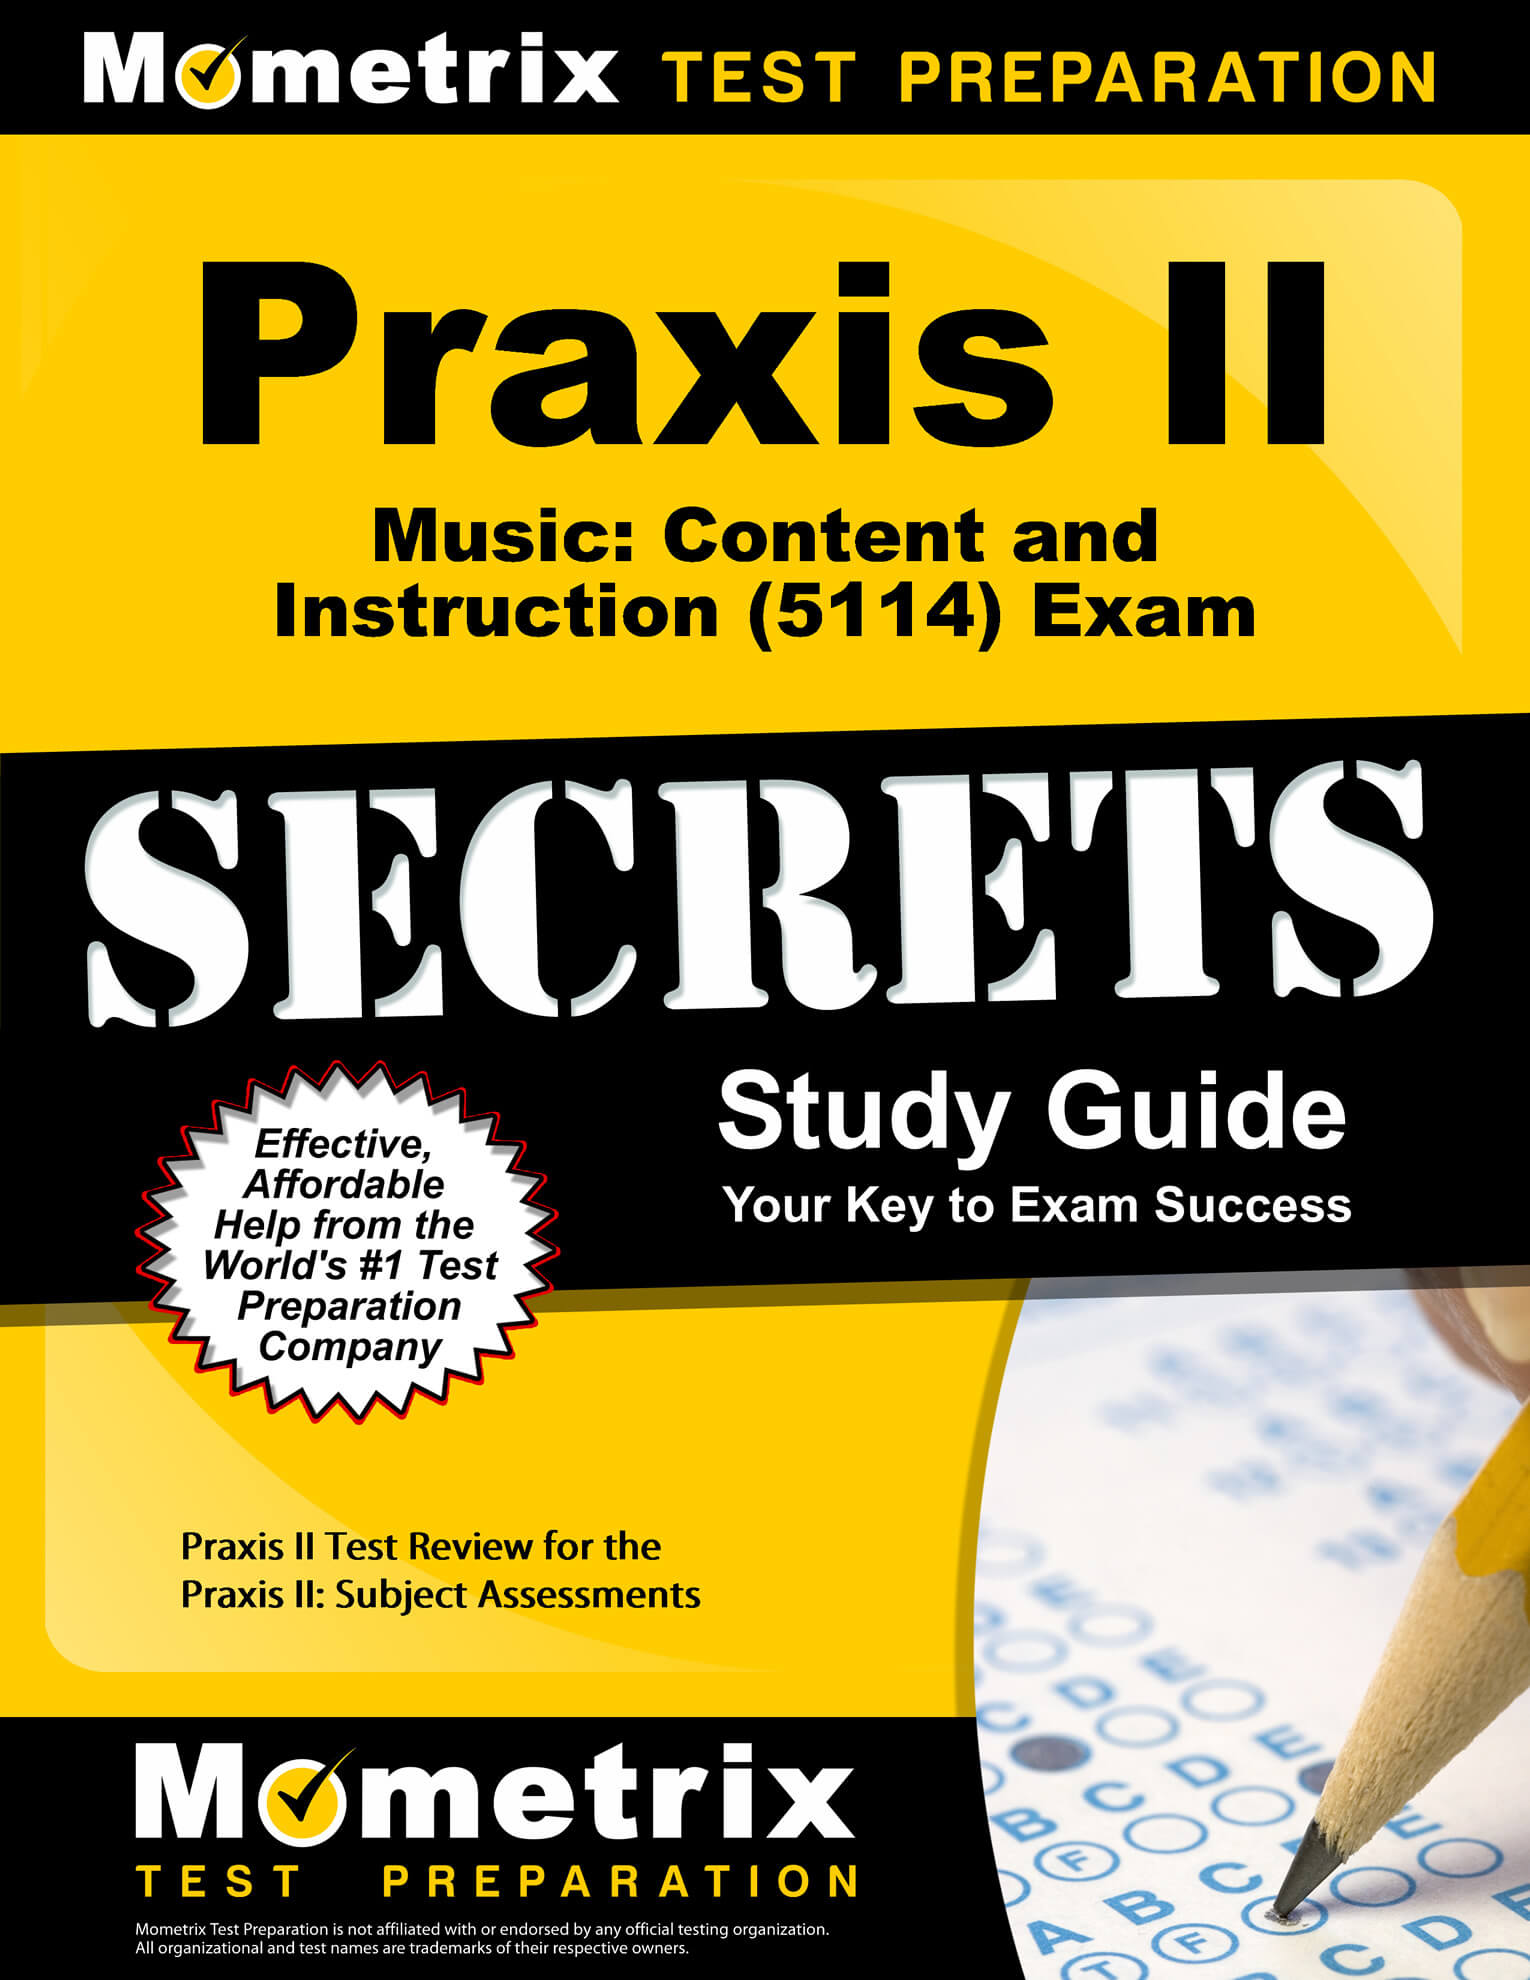 praxis study guide for music 0114 free owners manual u2022 rh wordworksbysea com For Elementary Education Praxis Study Guide For Elementary Education Praxis Study Guide